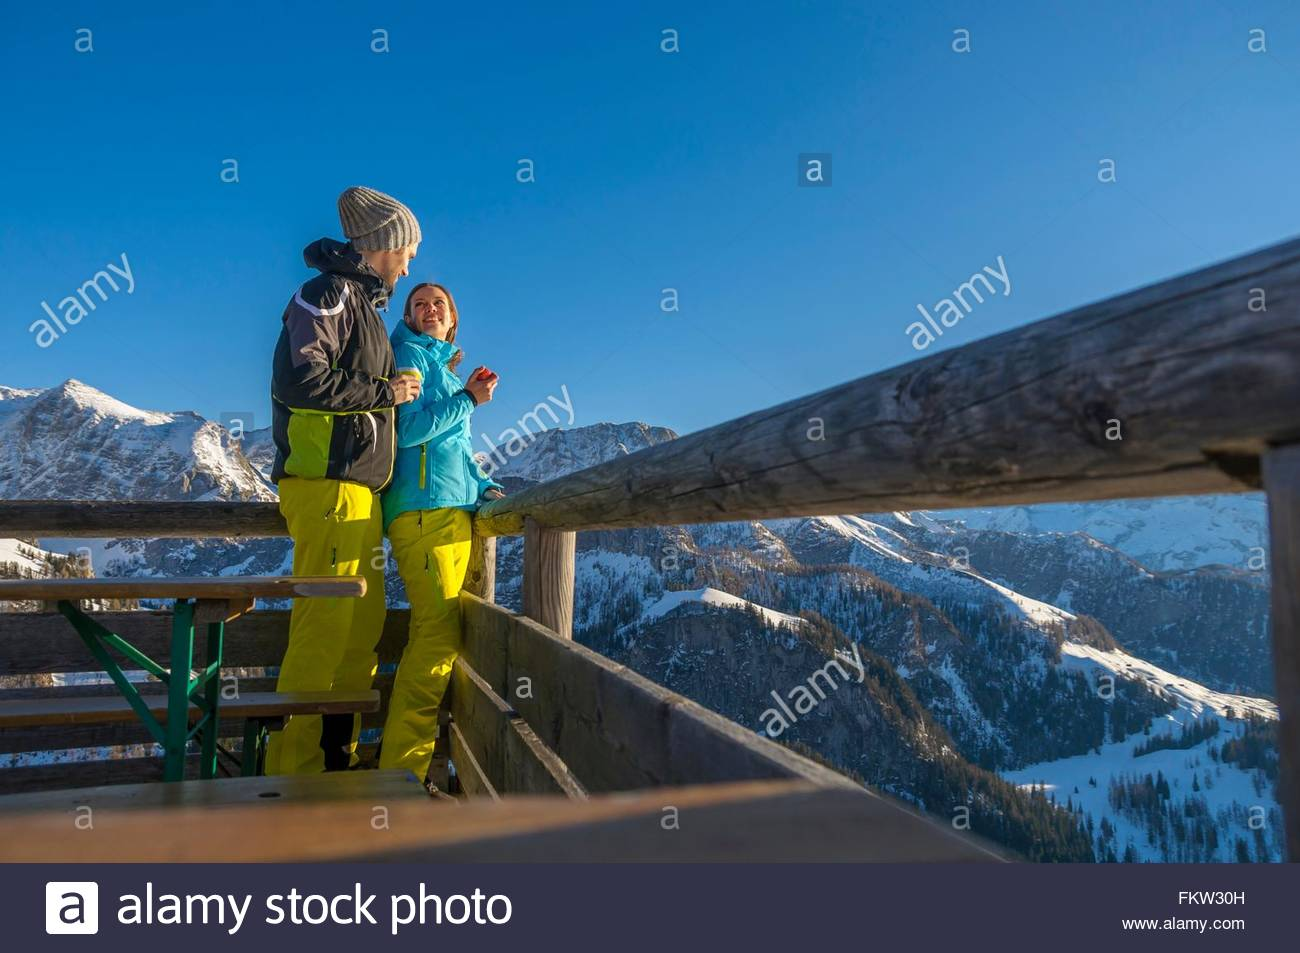 Couple wearing ski suit on viewing platform in mountains smiling, Jenner, Berchtesgadener, Germany - Stock Image